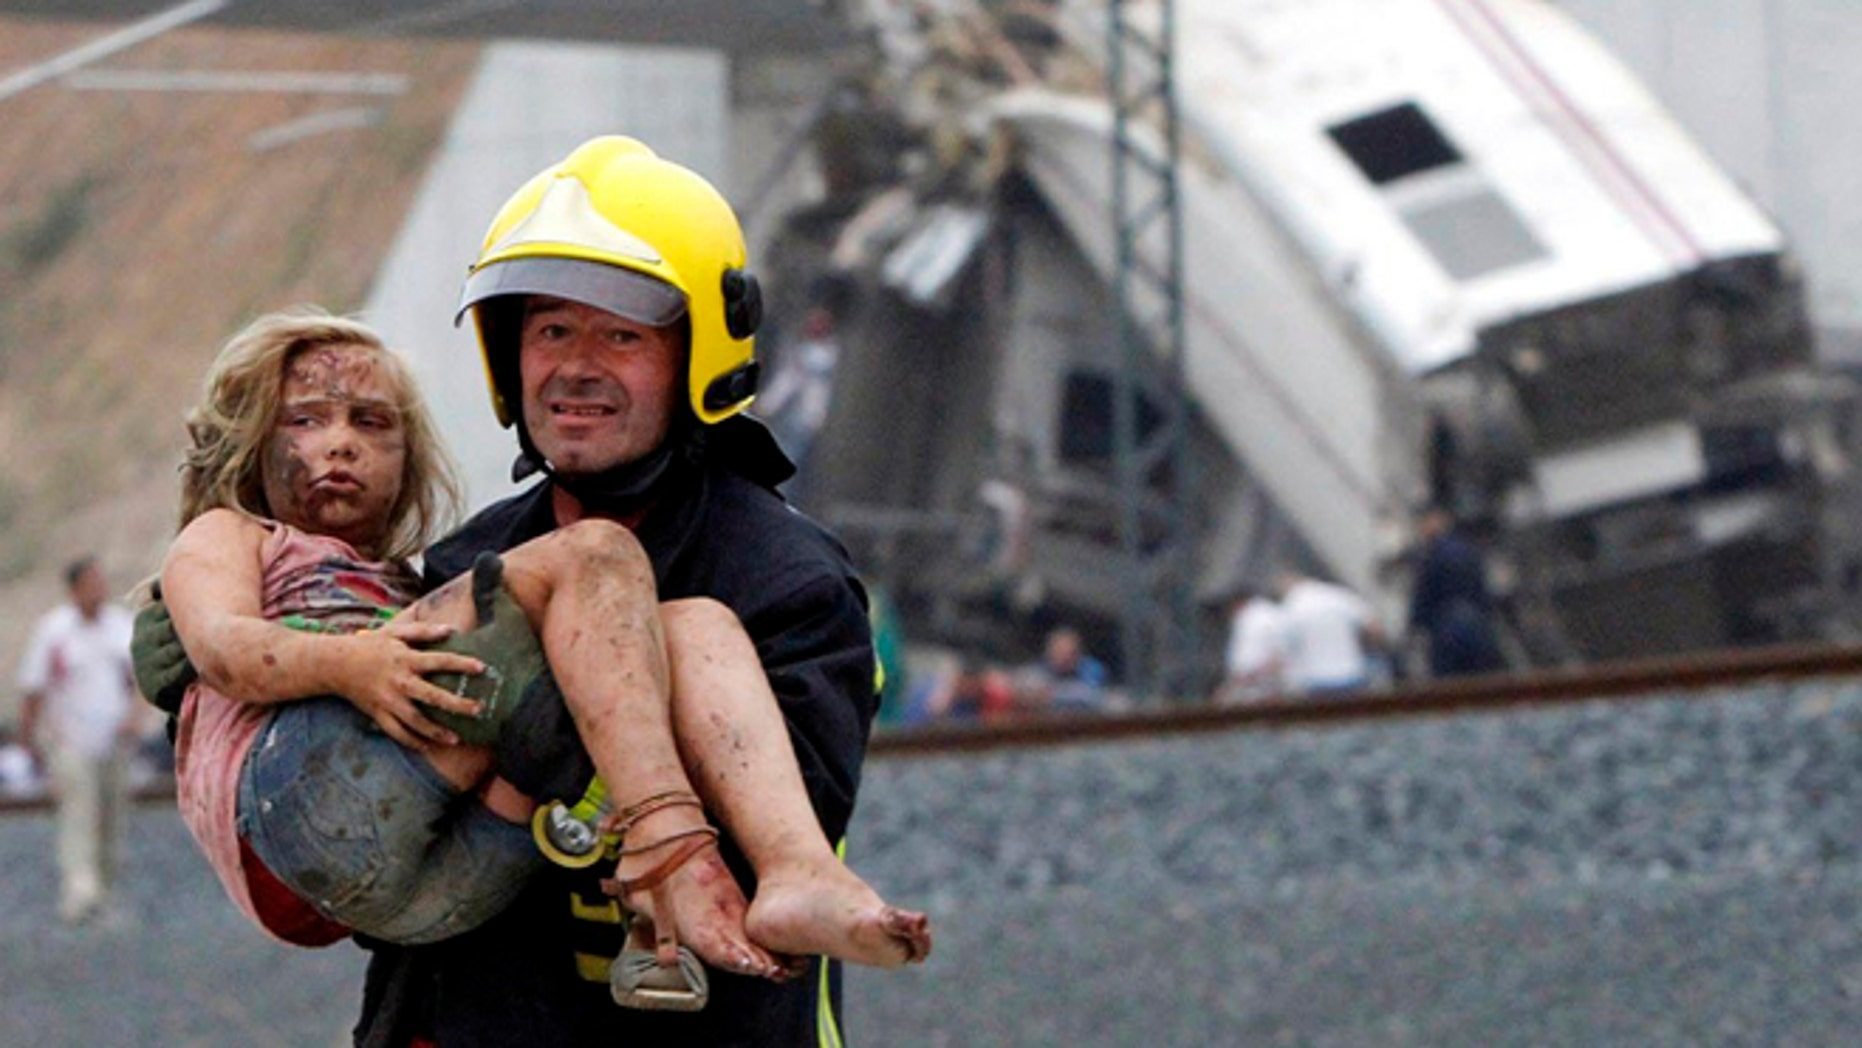 A fireman carries a wounded victim from the wreckage of a train crash near Santiago de Compostela, northwestern Spain.